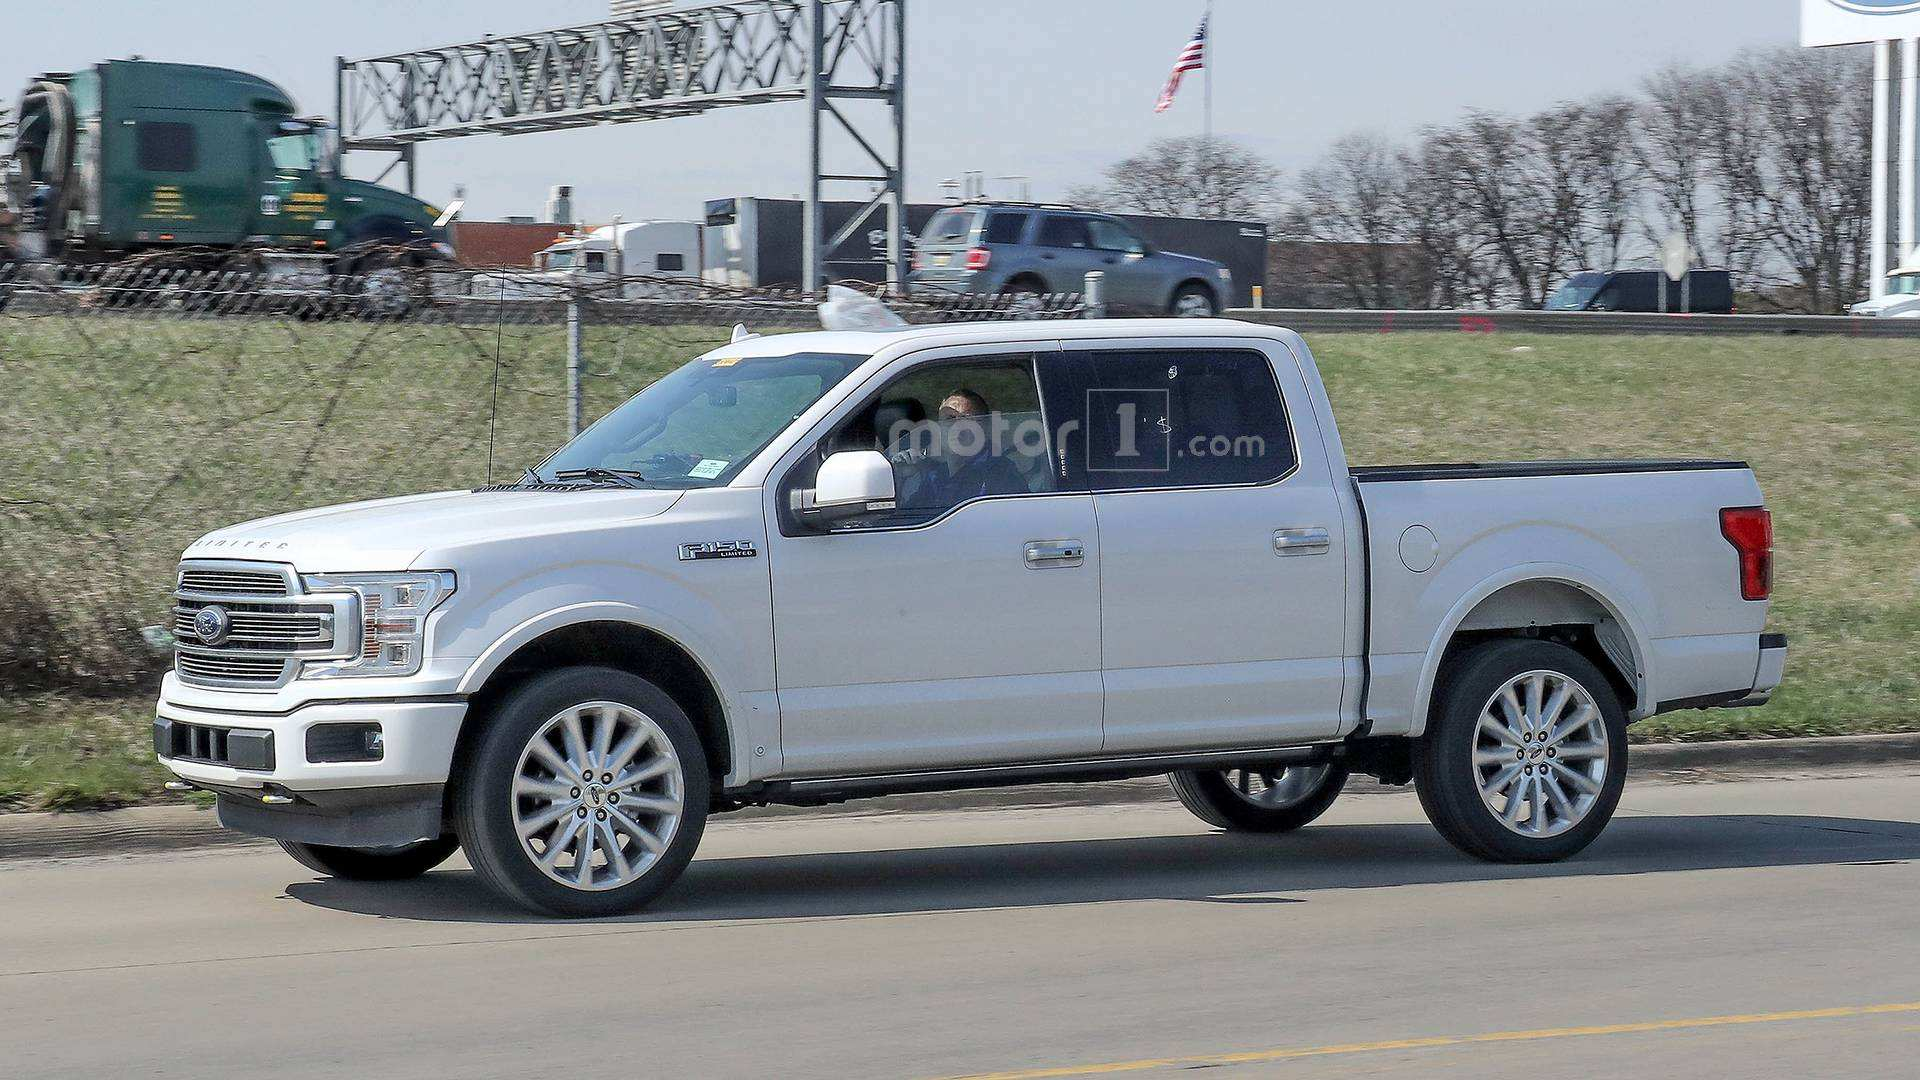 65 All New 2019 Ford 150 Model